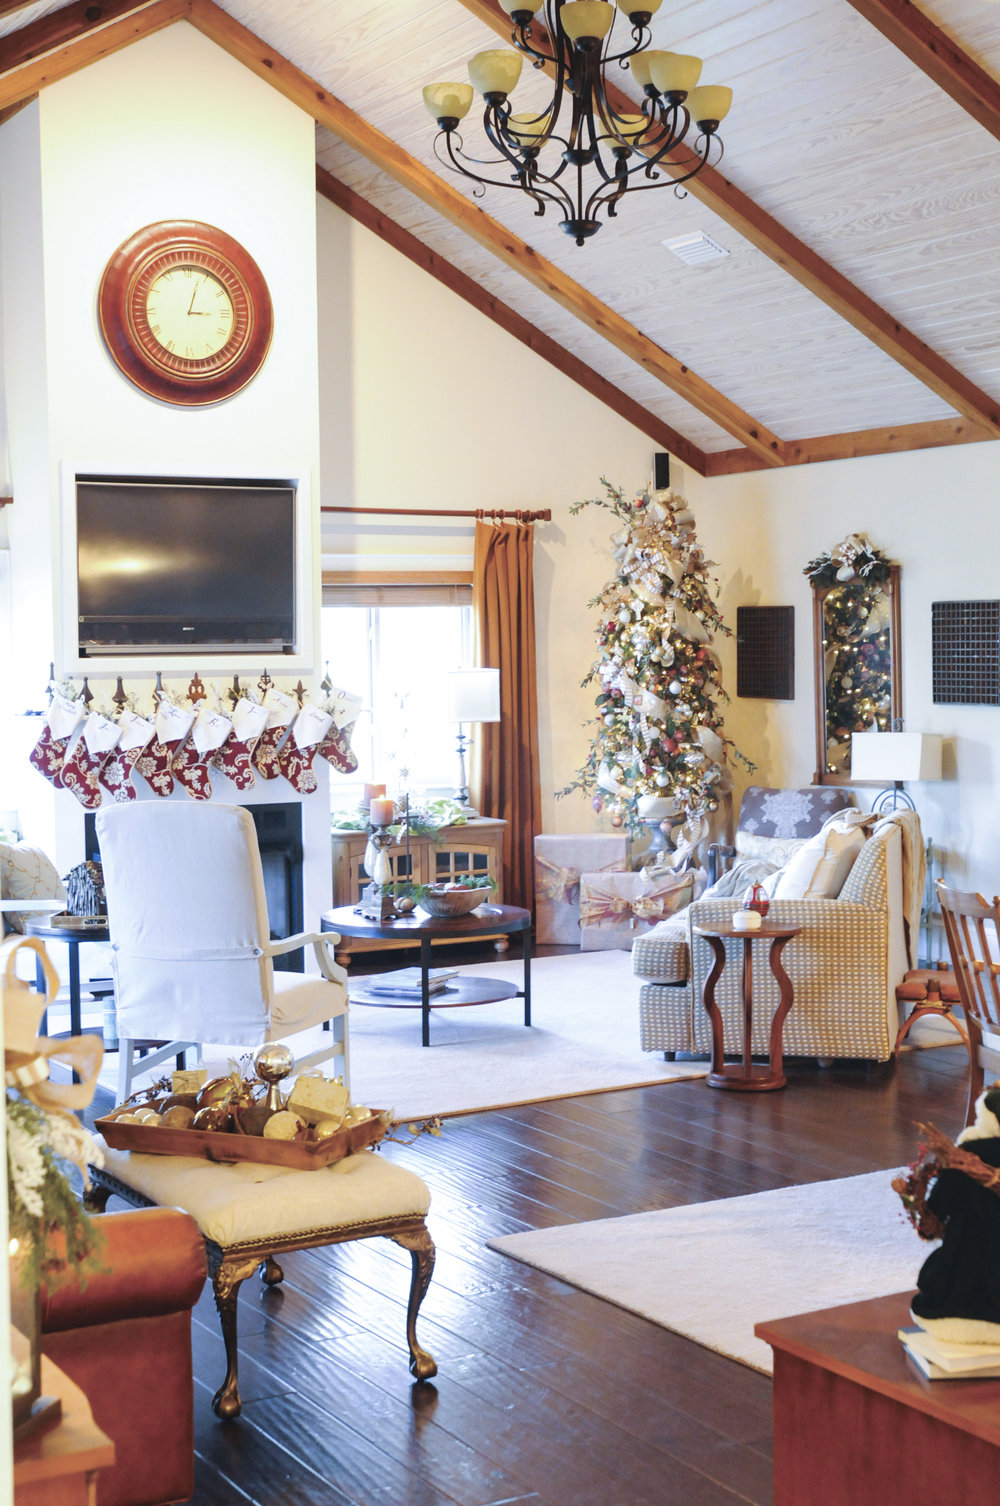 The Slavins Home, Wiregrass Living Magazine, Nov/Dec 2016